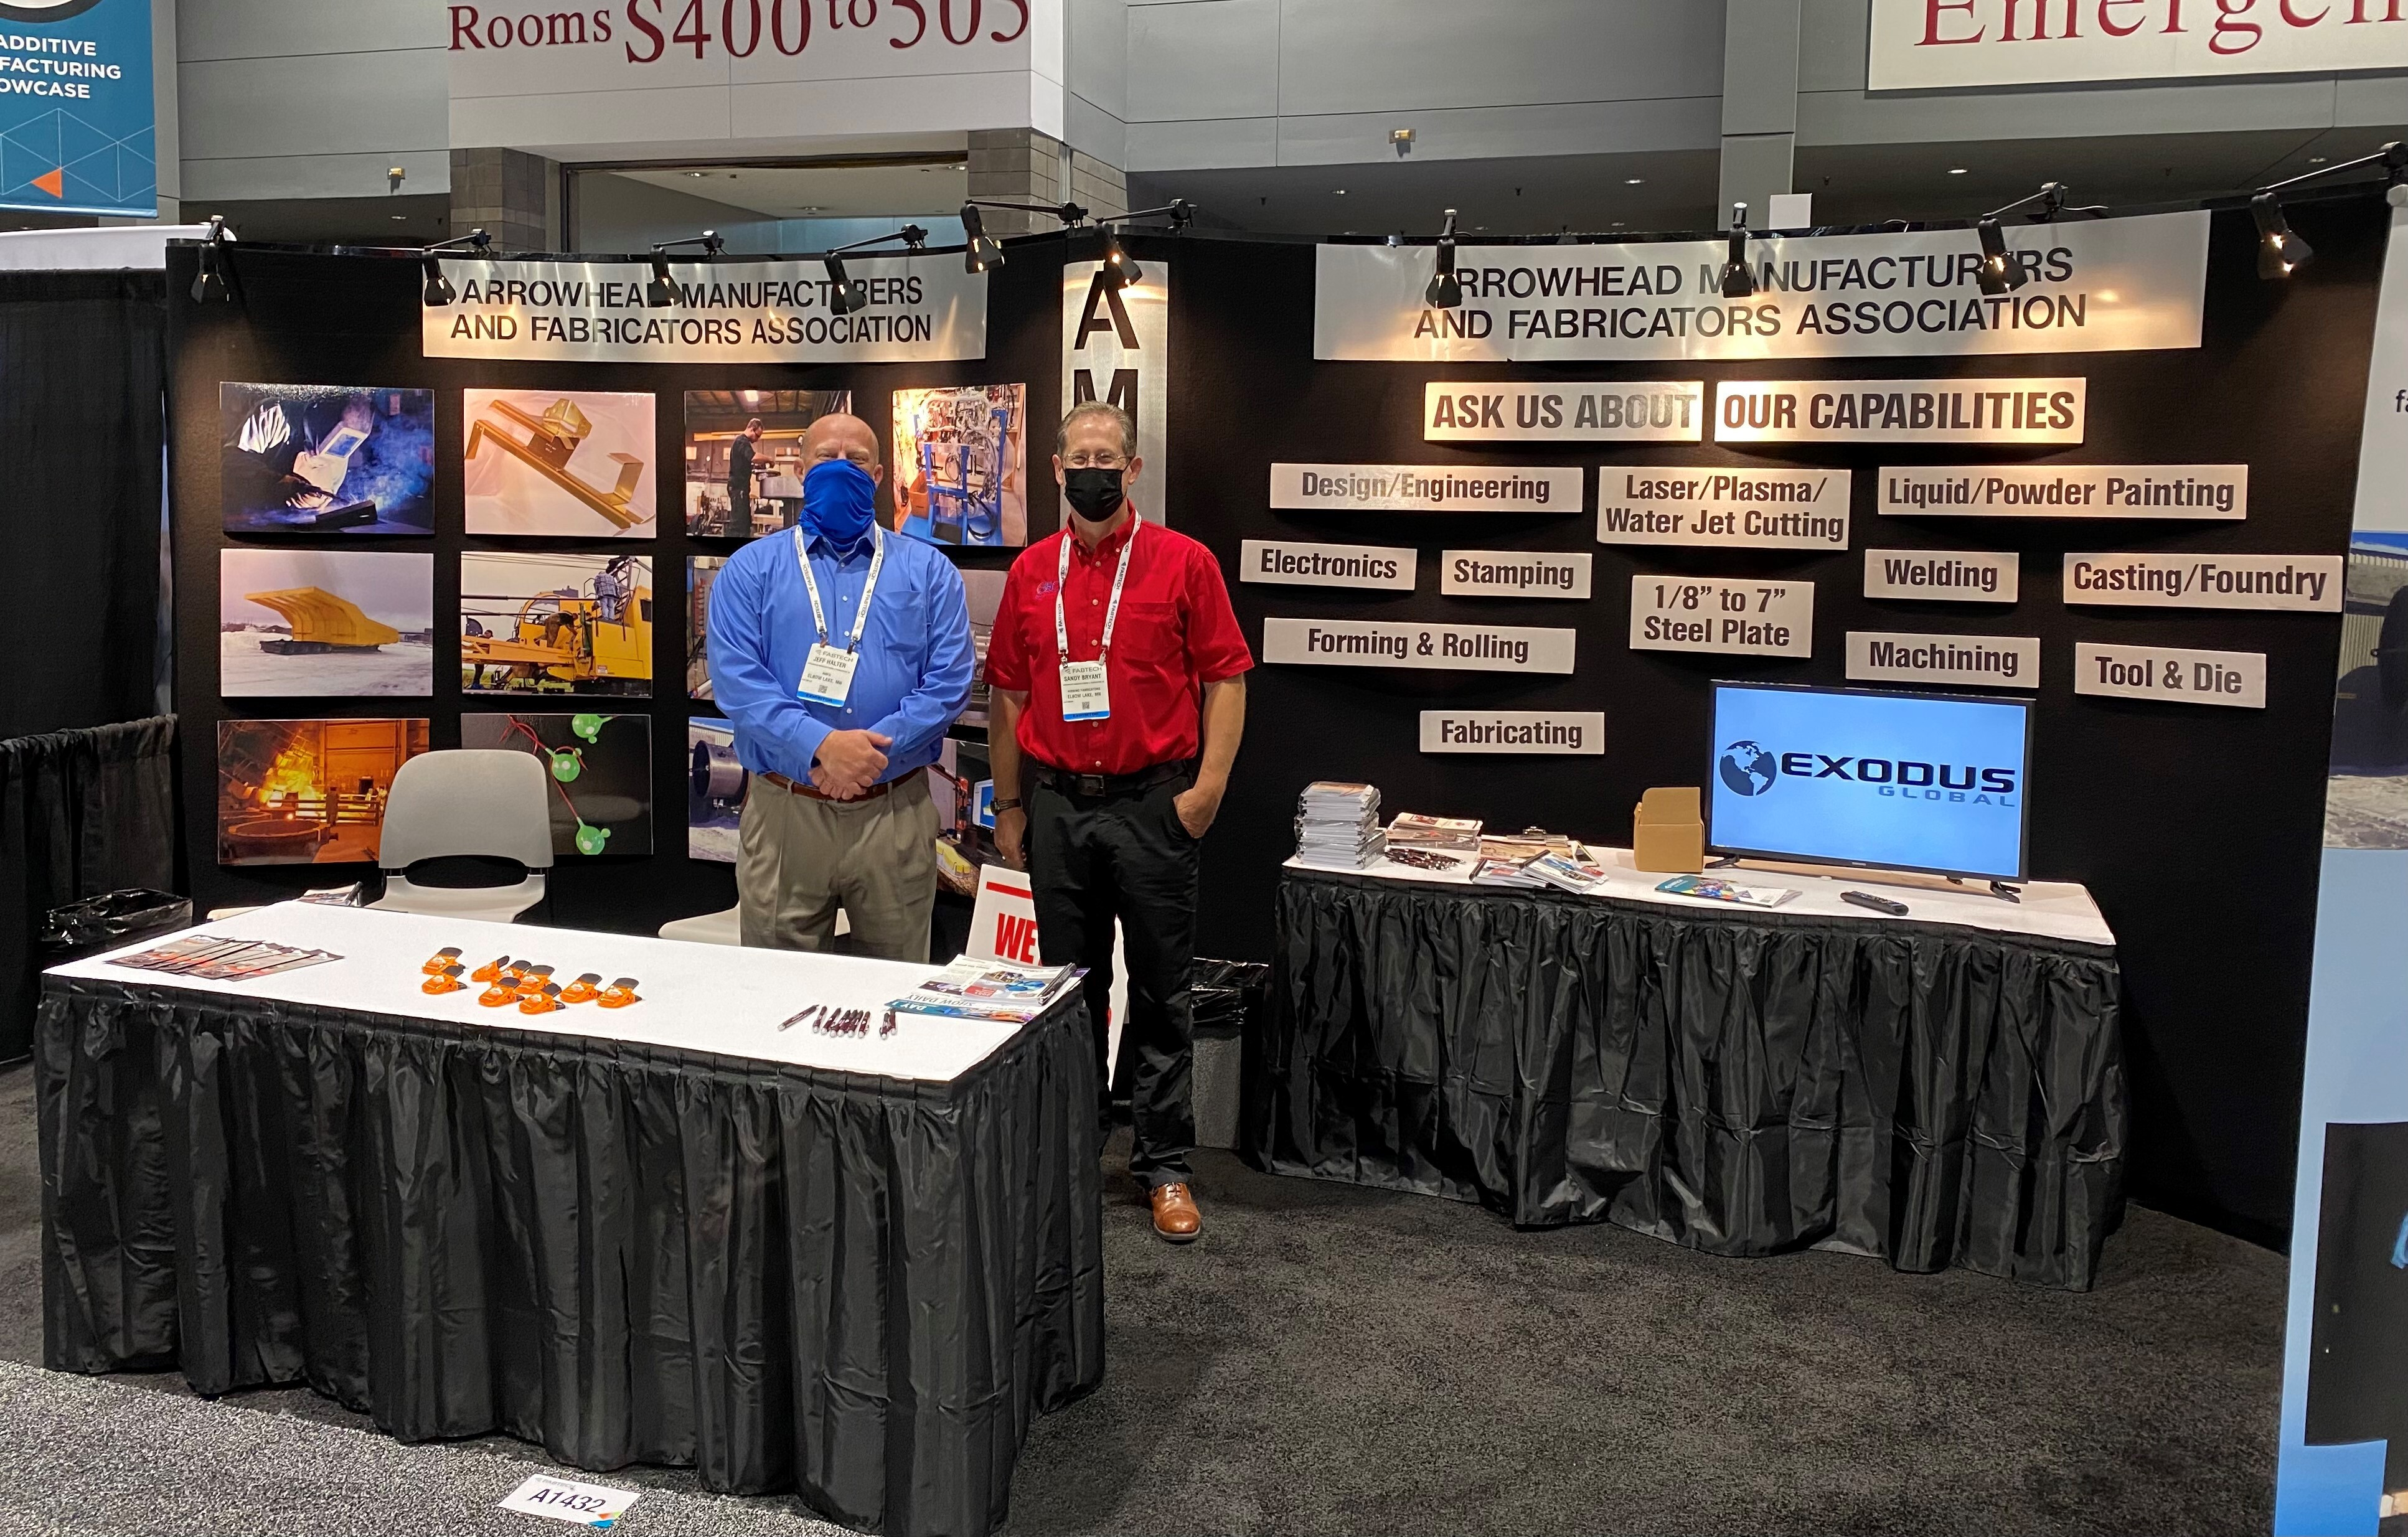 Image for AMFA and Dept of IRRR host exhibit booth at FABTECH 2021 in Chicago